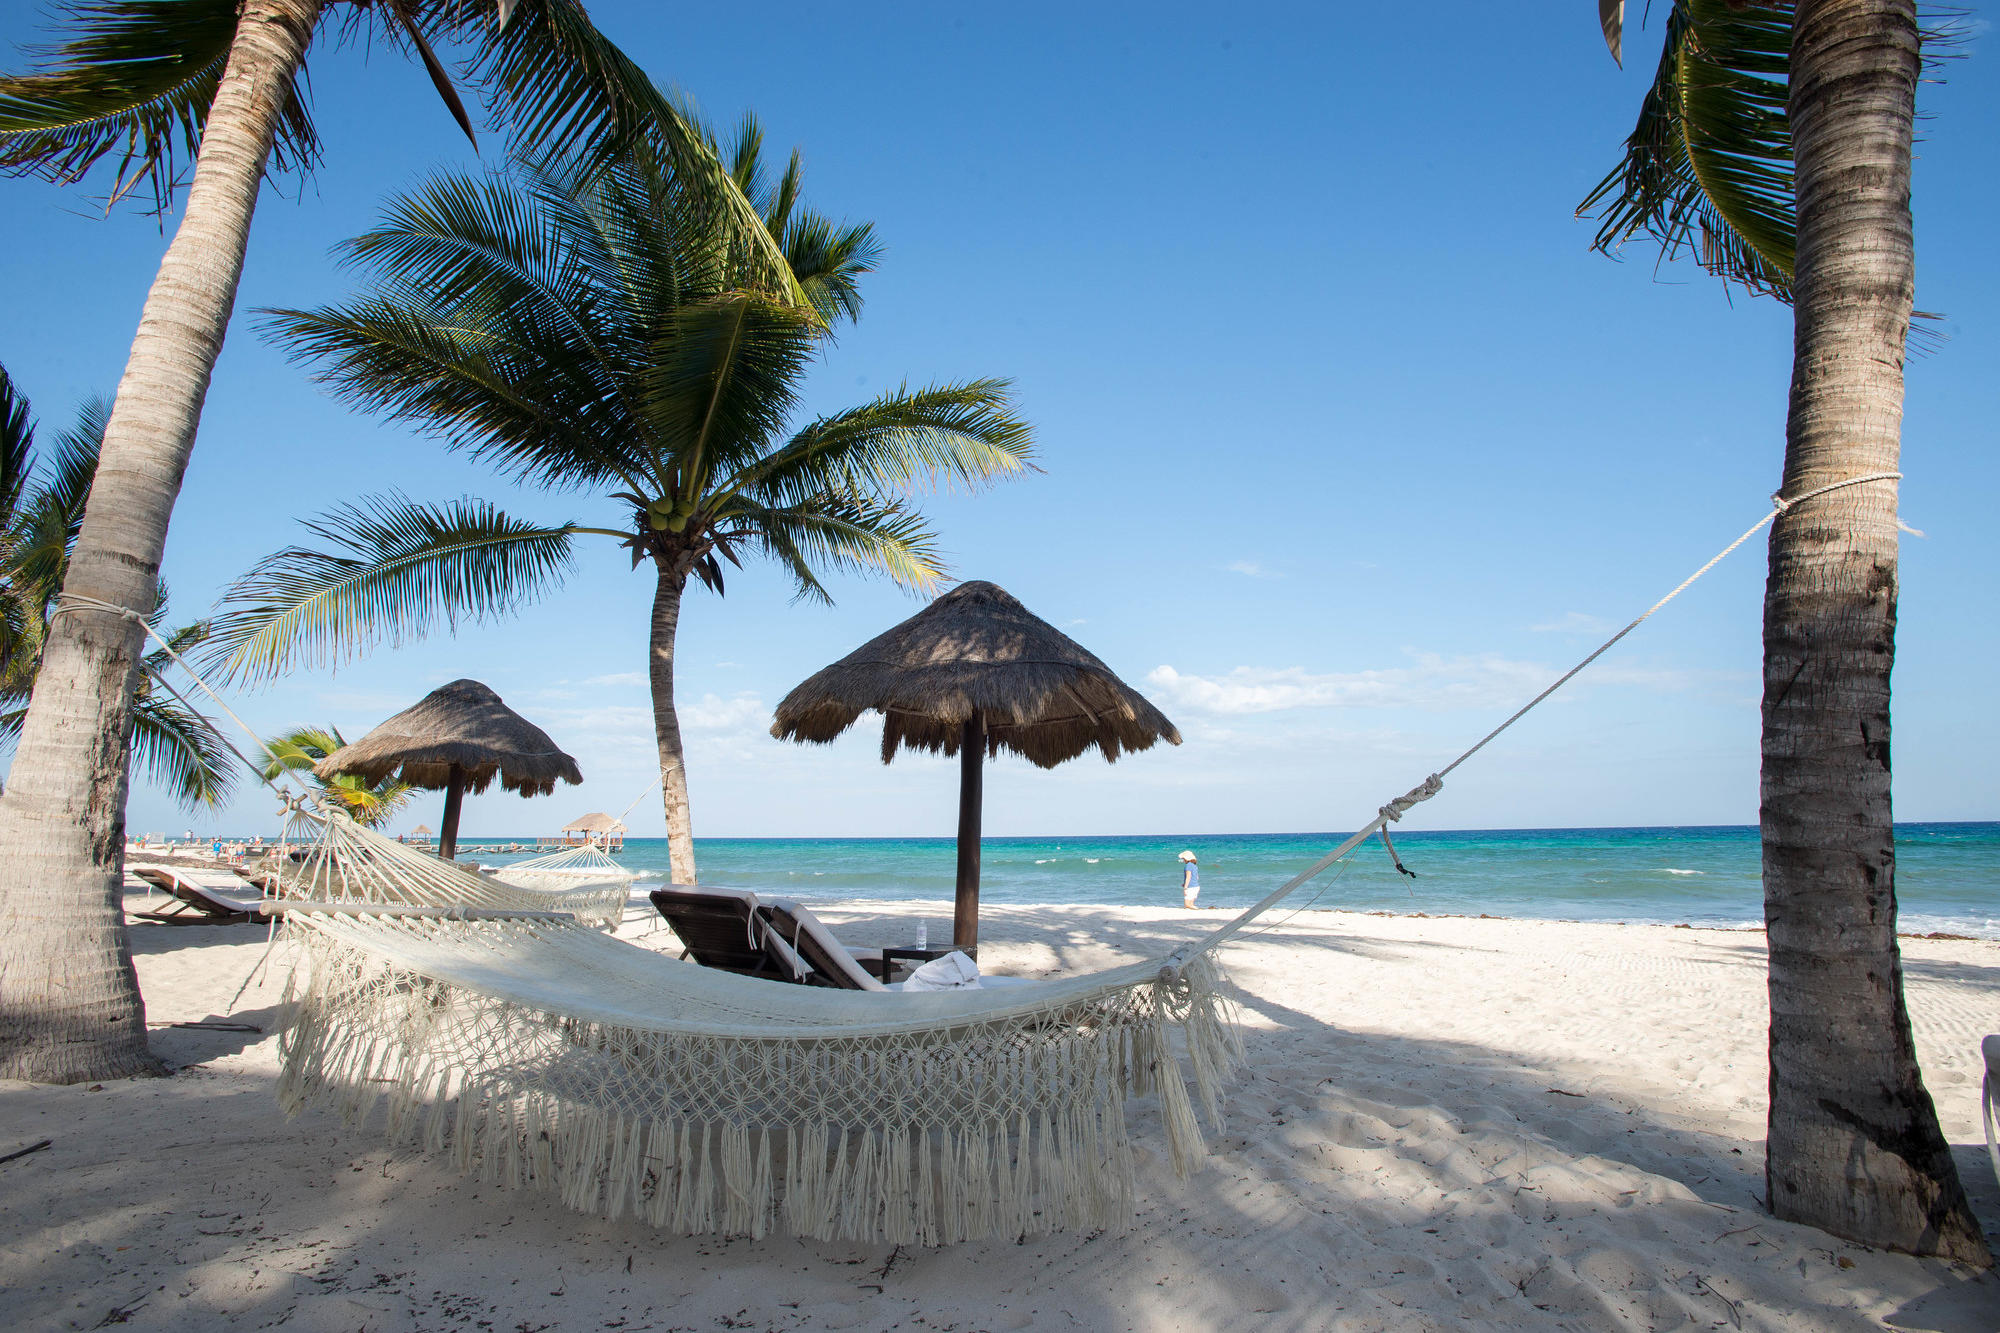 The peaceful beach with hammocks at Le Reve Boutique Beachfront Hotel